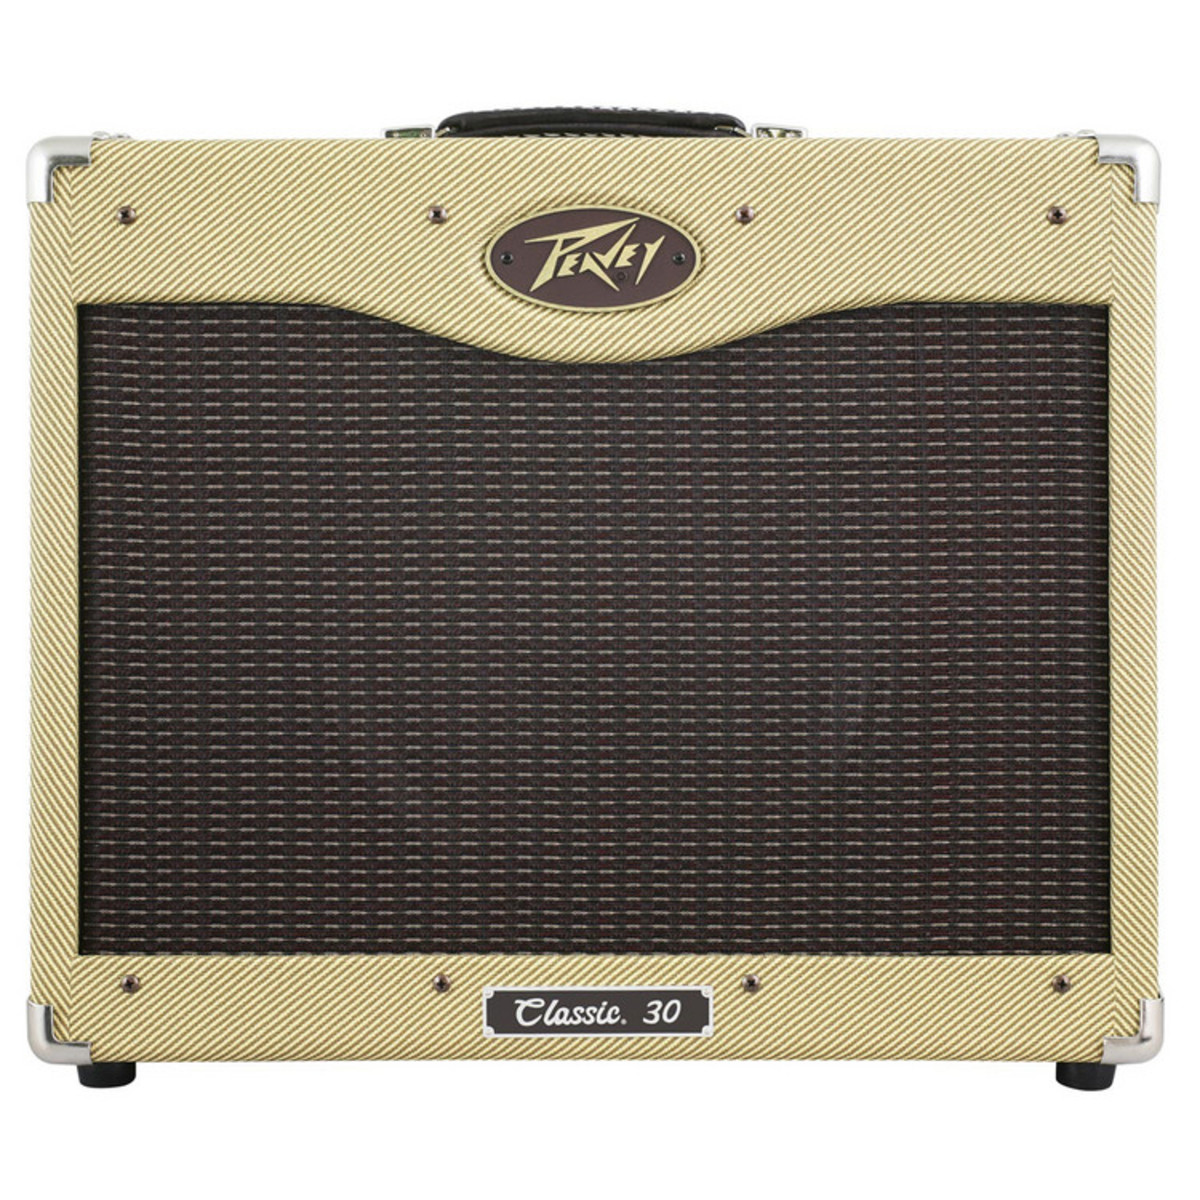 peavey classic 30 112 guitar amp tweed at. Black Bedroom Furniture Sets. Home Design Ideas